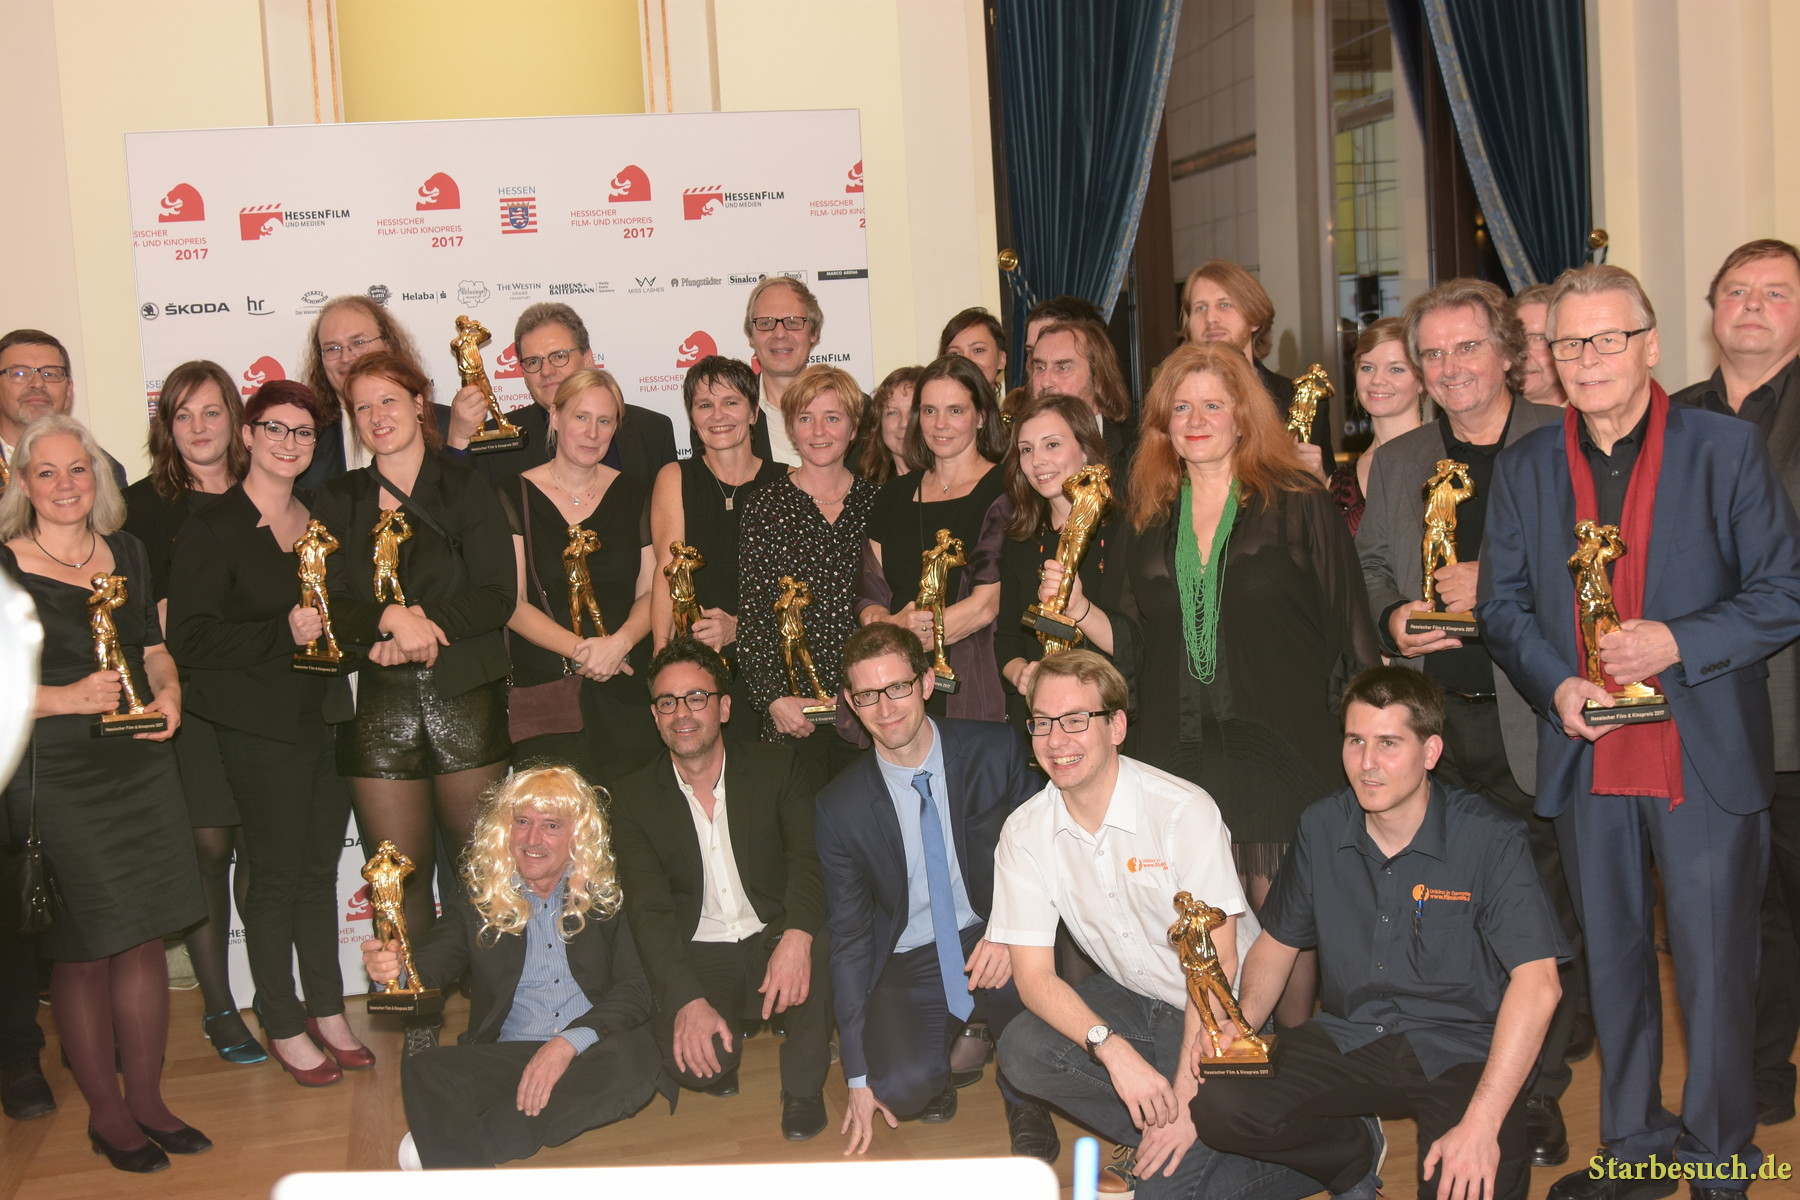 Cinema Award Winners, Hessischer Film- und Kinopreis 2017, Alte Oper Frankfurt/Main, Germany